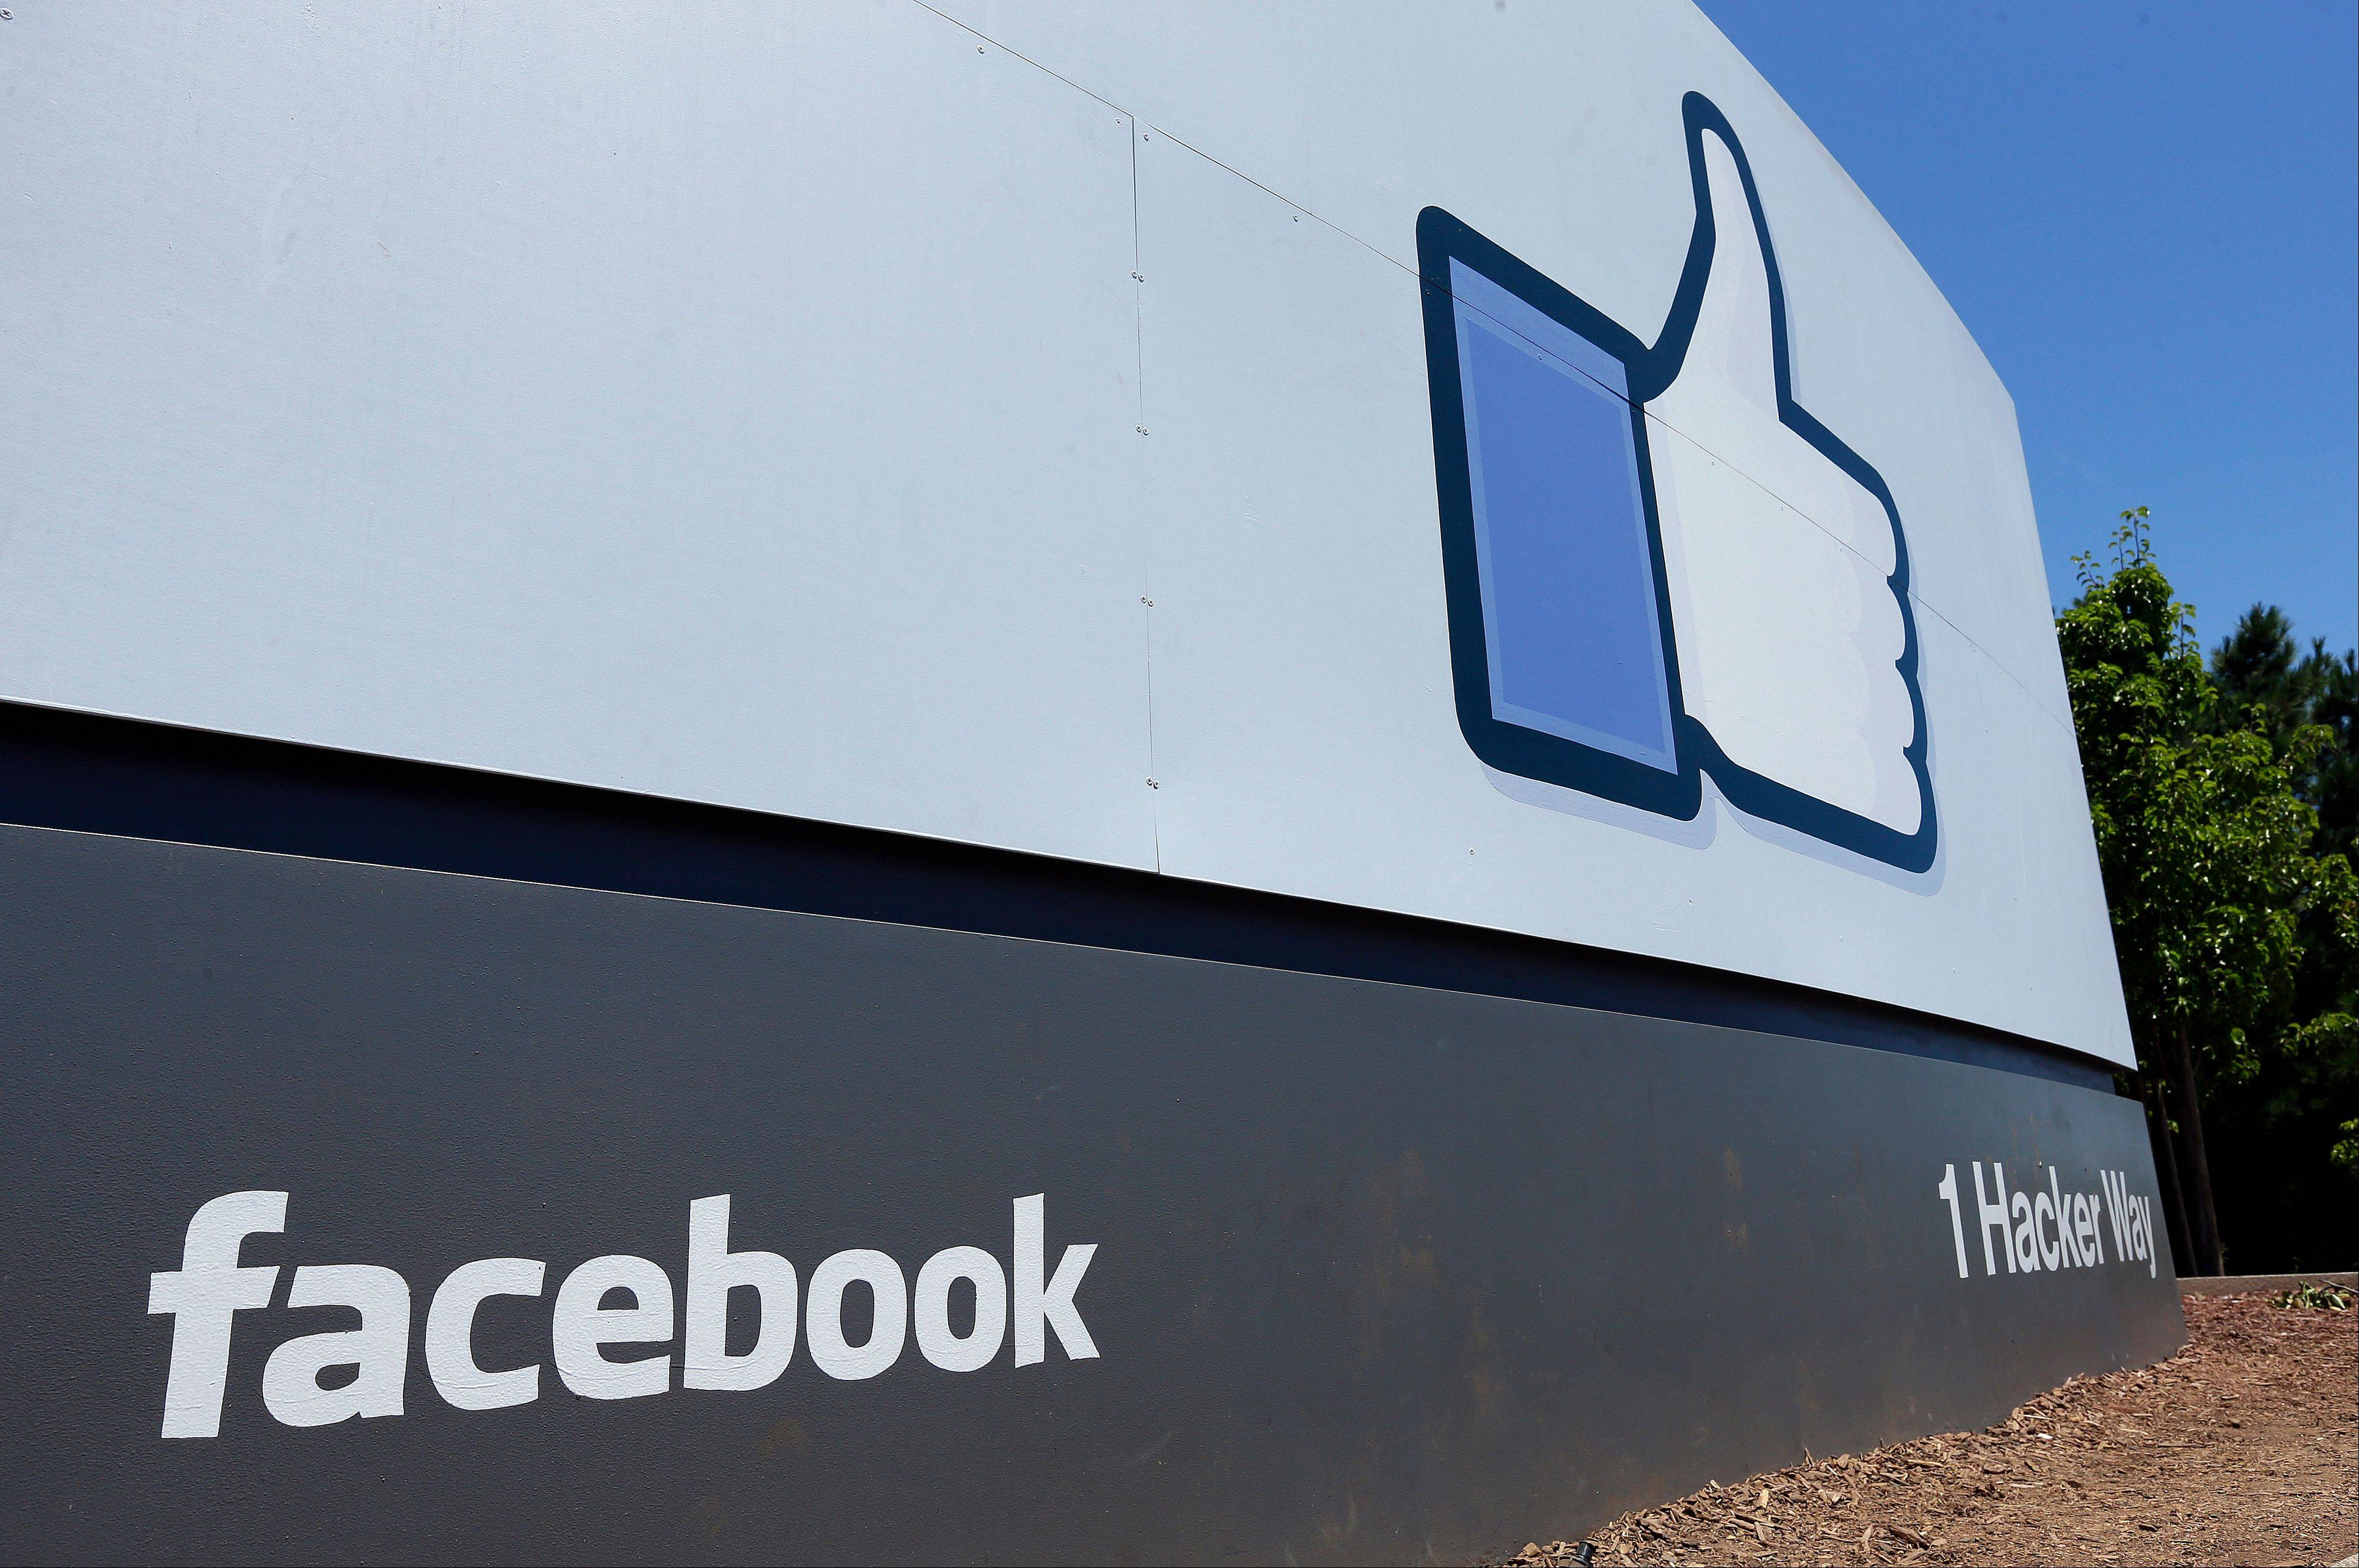 Facebook began showing mobile ads in 2012 and is now looking into mobile video ads.